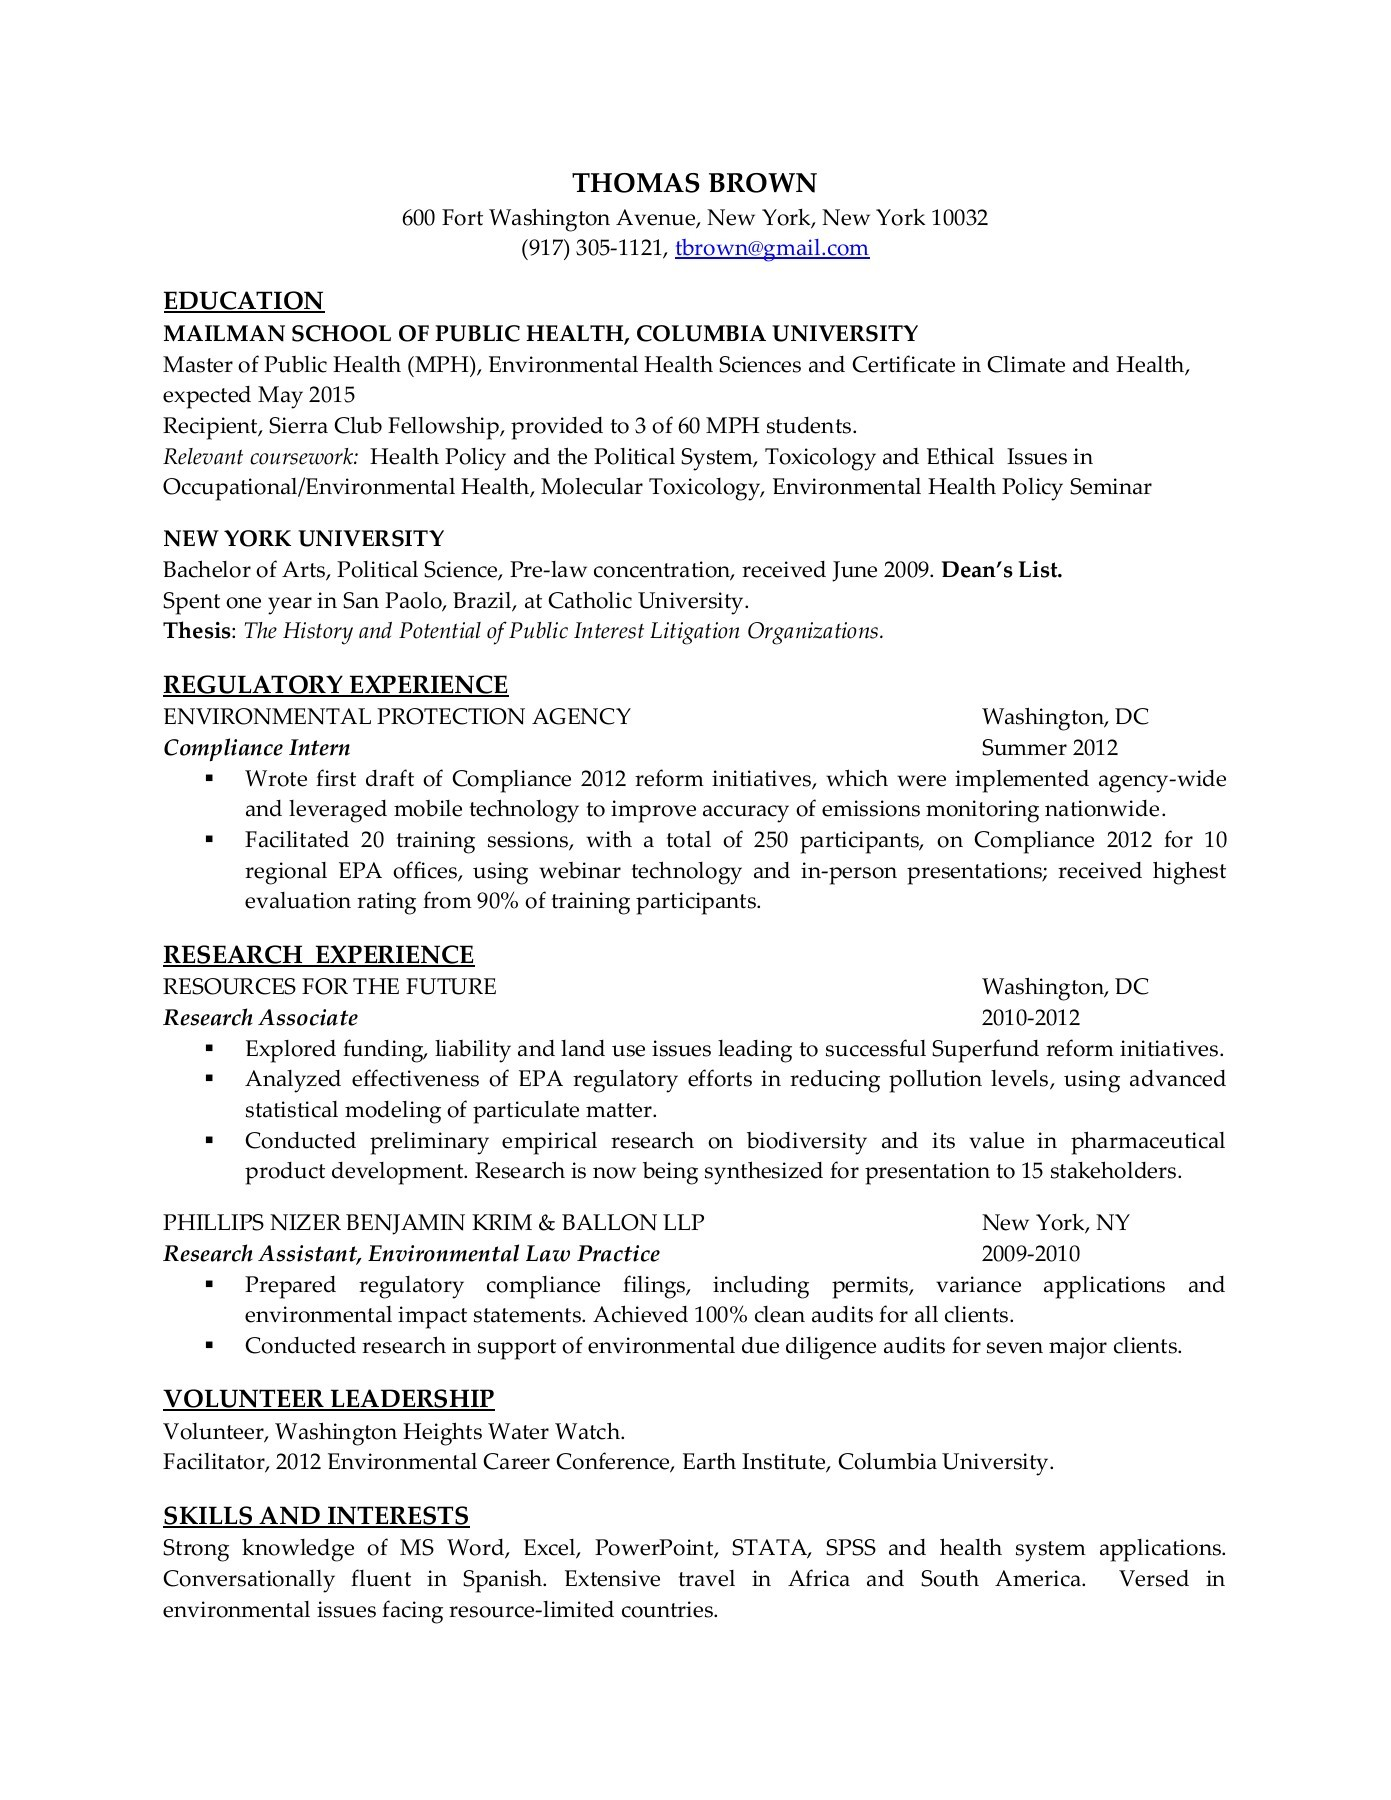 resume samples mailman school of public health sample lab assistant maintenance Resume Public Health Resume Sample